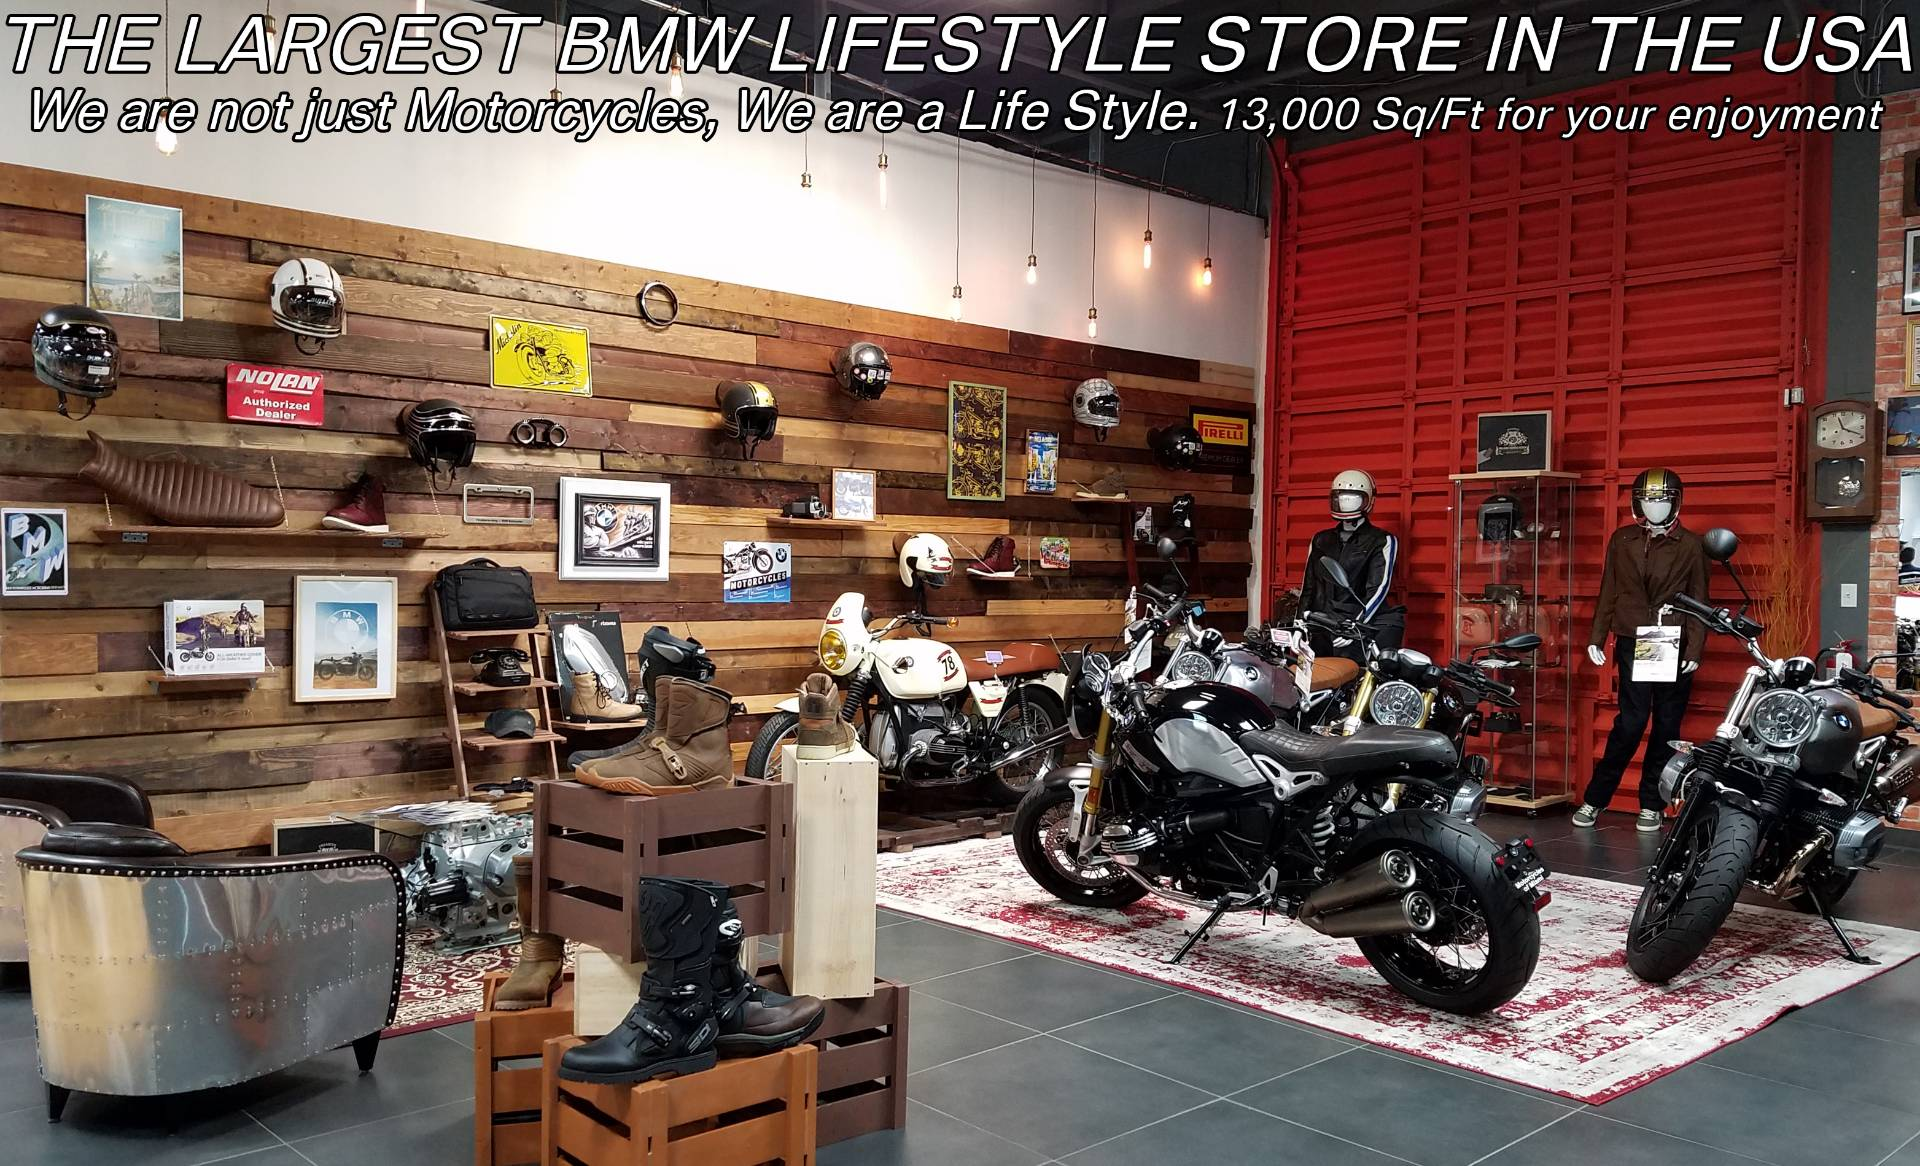 New 2019 BMW R 1250 GSA for sale, BMW for sale R 1250GSA, BMW Motorcycle R1250GSA, new BMW 1250GS Adventure, R1250GSAdventure, BMW Adventure, BMW Motorcycles of Miami, Motorcycles of Miami - Photo 51